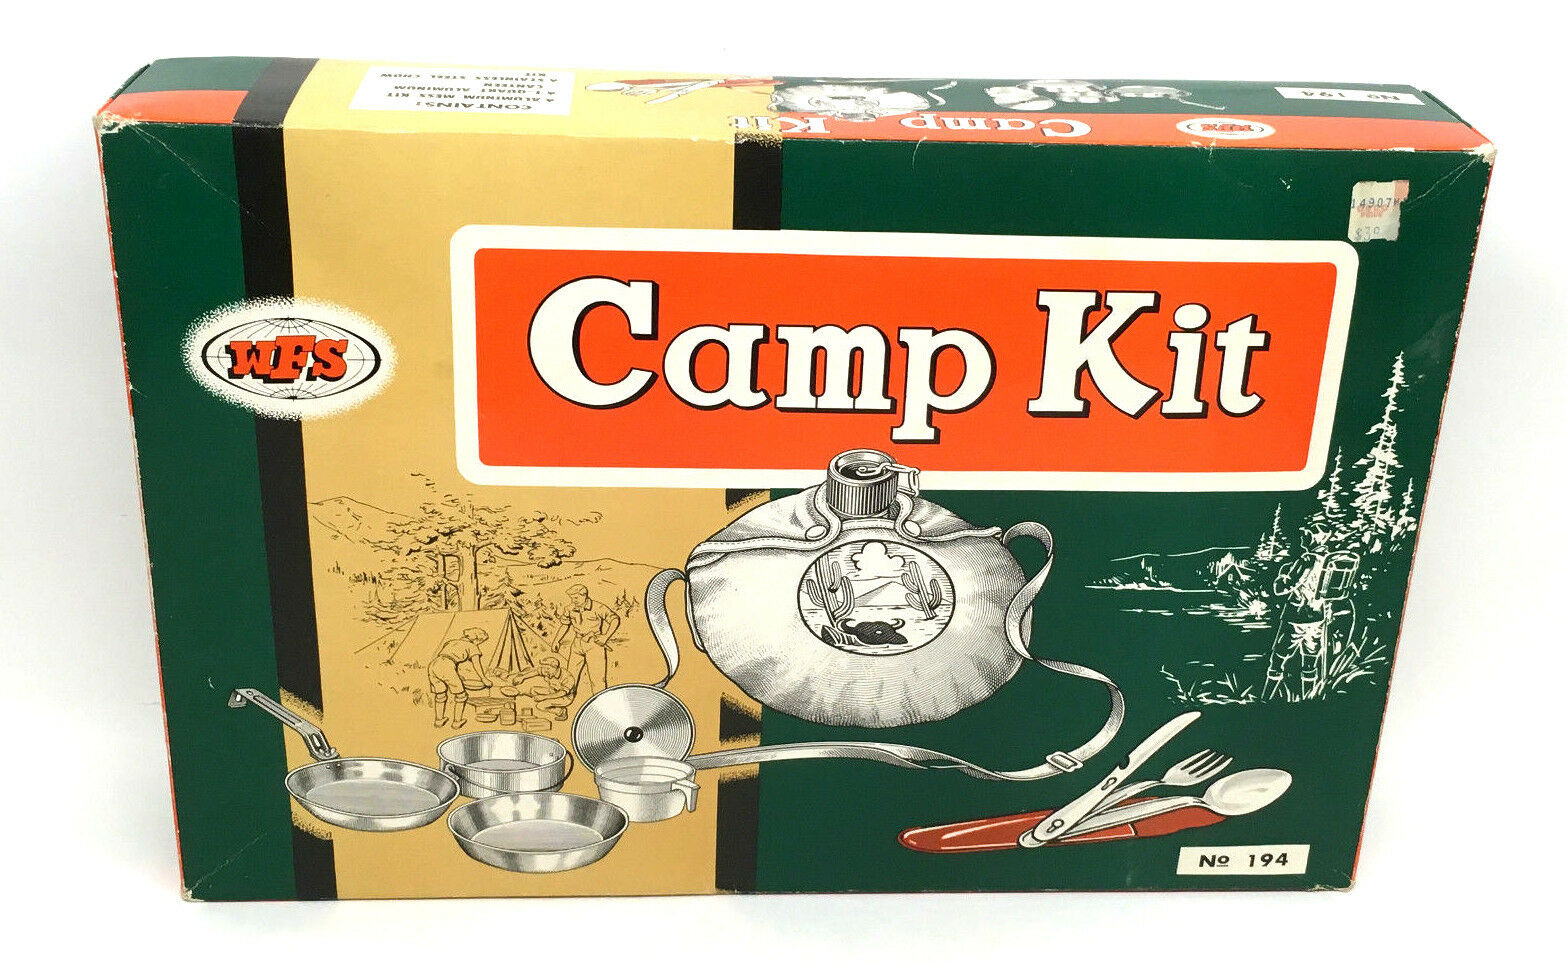 Vintage Camp Kit Cook  Set WFS Aluminum Camp CookwareJapan-Original Box No.194  order now with big discount & free delivery